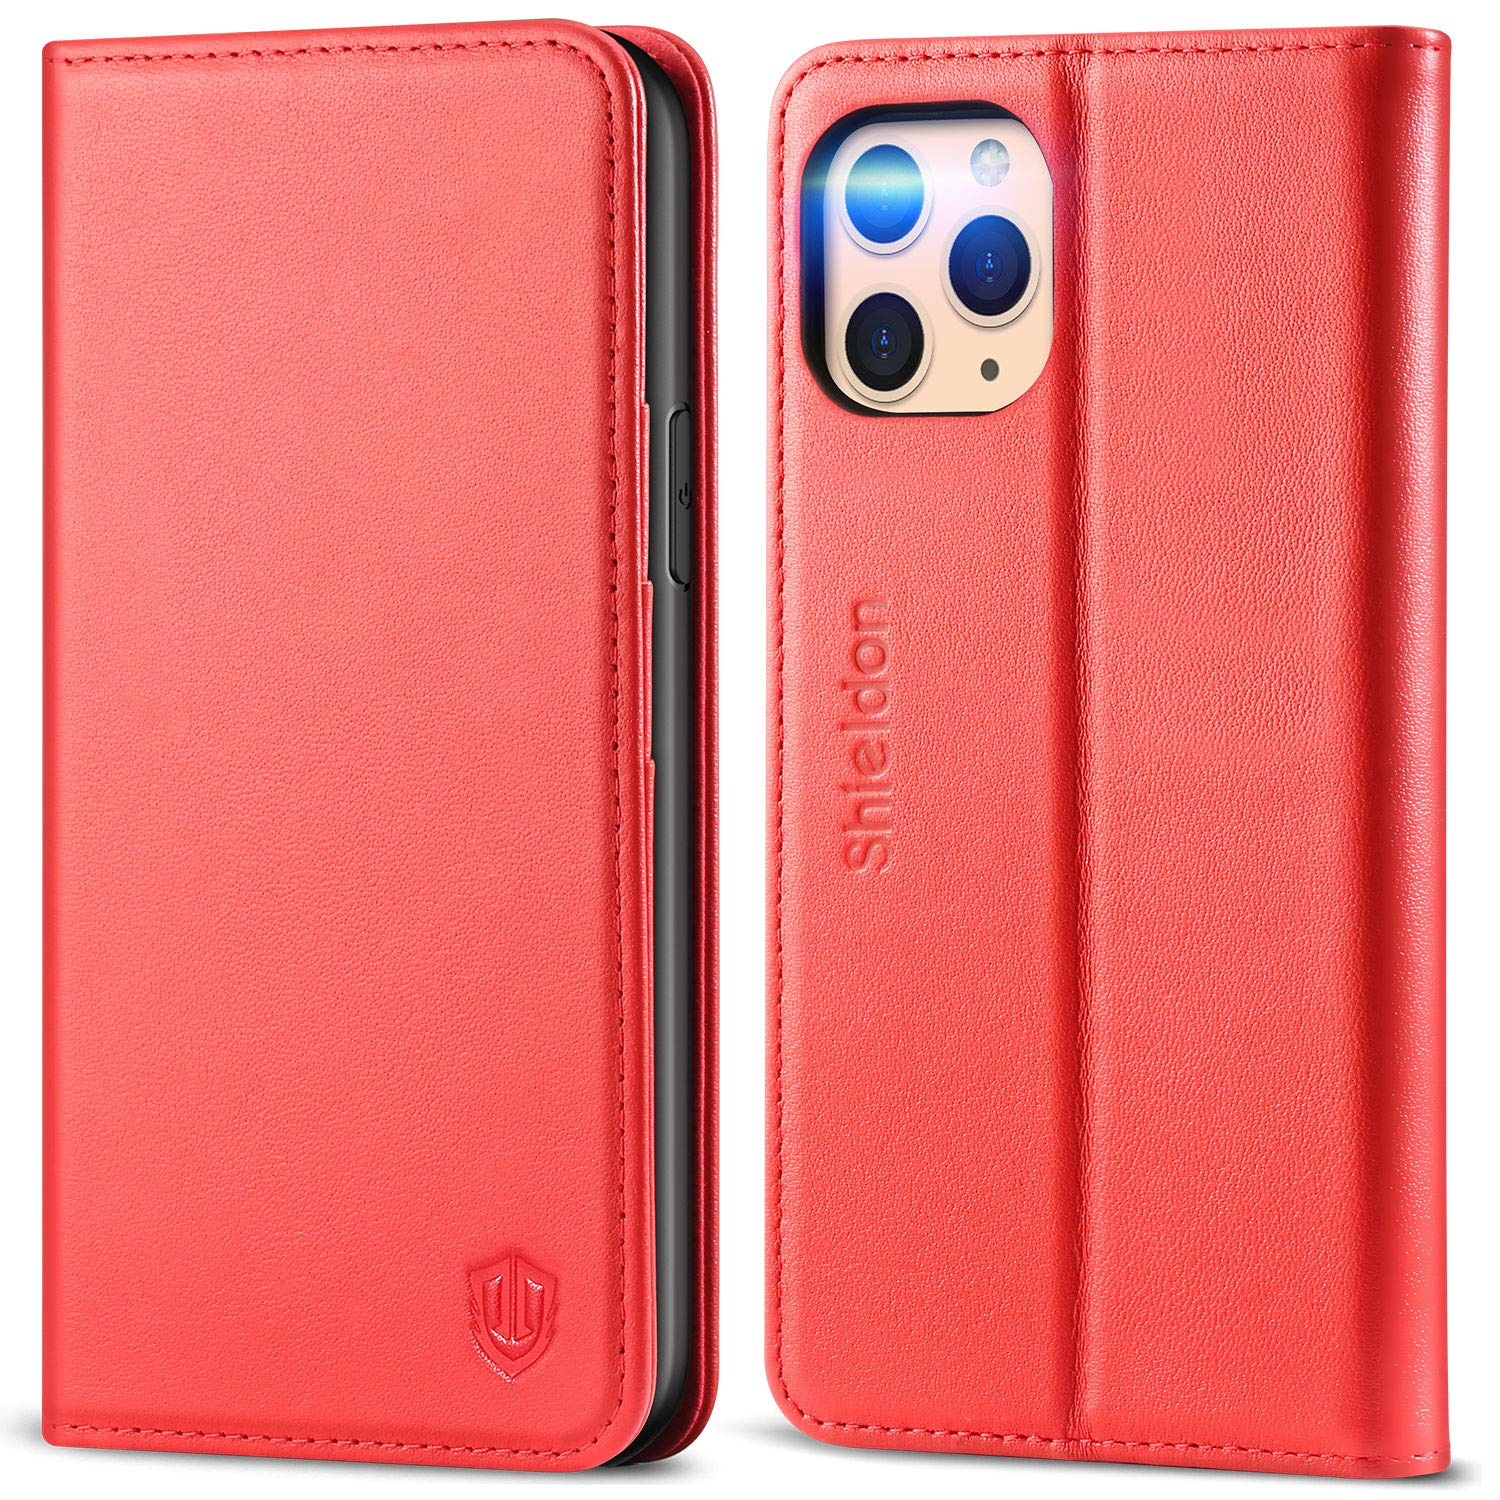 SHIELDON iPhone 11 Pro Case, iPhone 11 Pro Wallet Auto Sleep Wake Case Genuine Leather Folio Case with Kickstand RFID Card Slot, TPU Shockproof Cover Compatible with iPhone 11 Pro (5.8 Inch) - Red